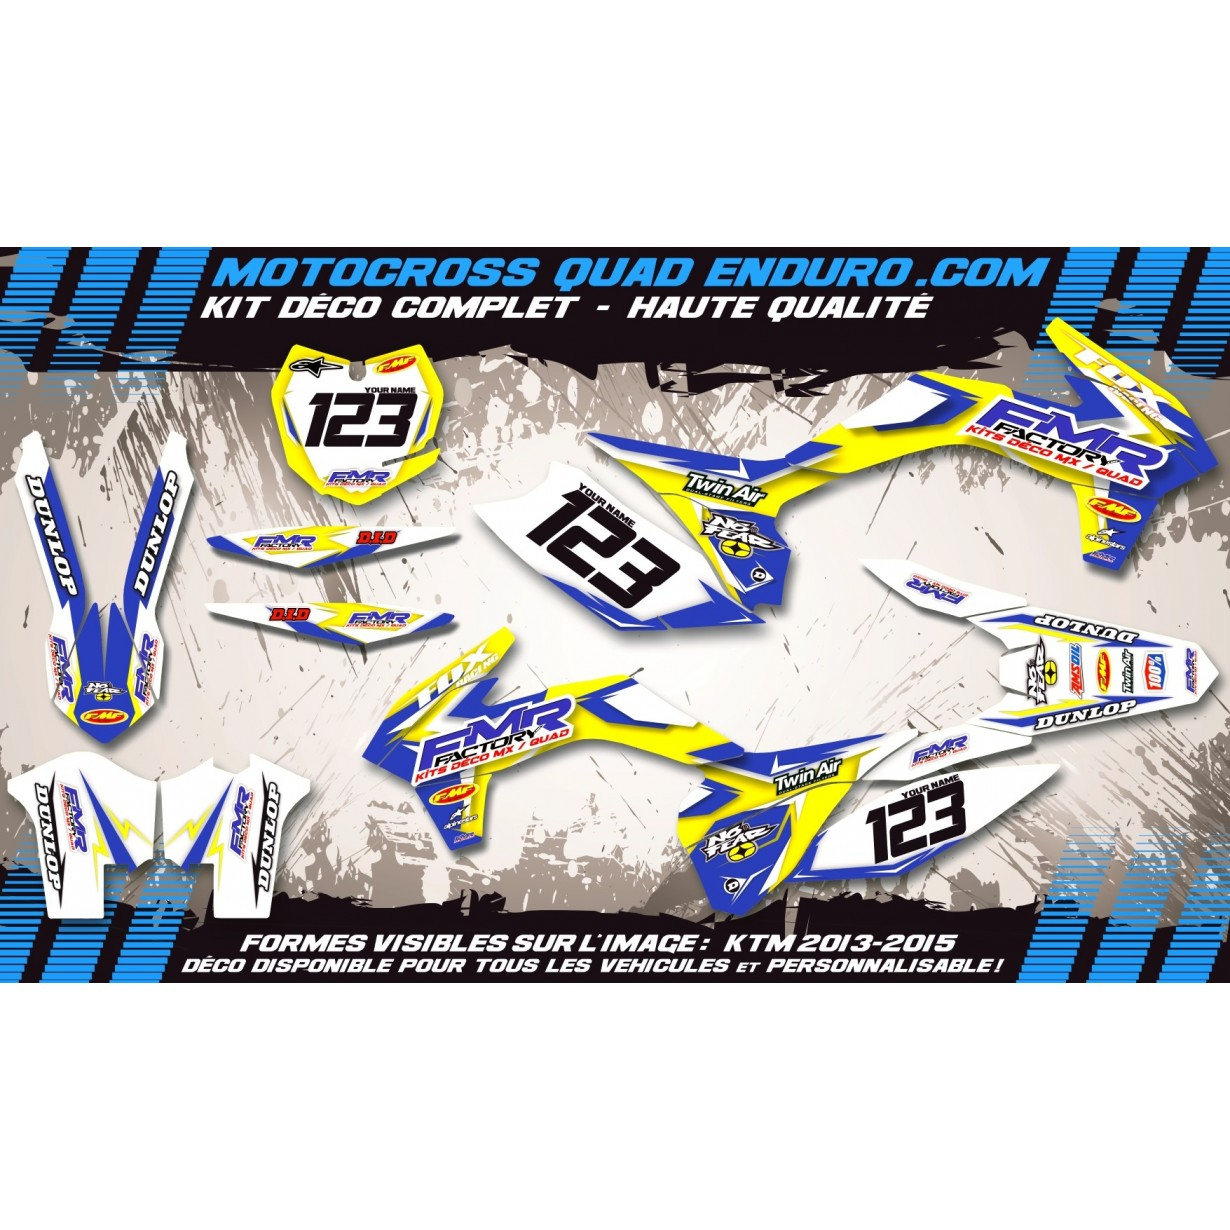 KIT DÉCO Perso 700 RAPTOR 13-16 Quad Fmr Factory MA13D